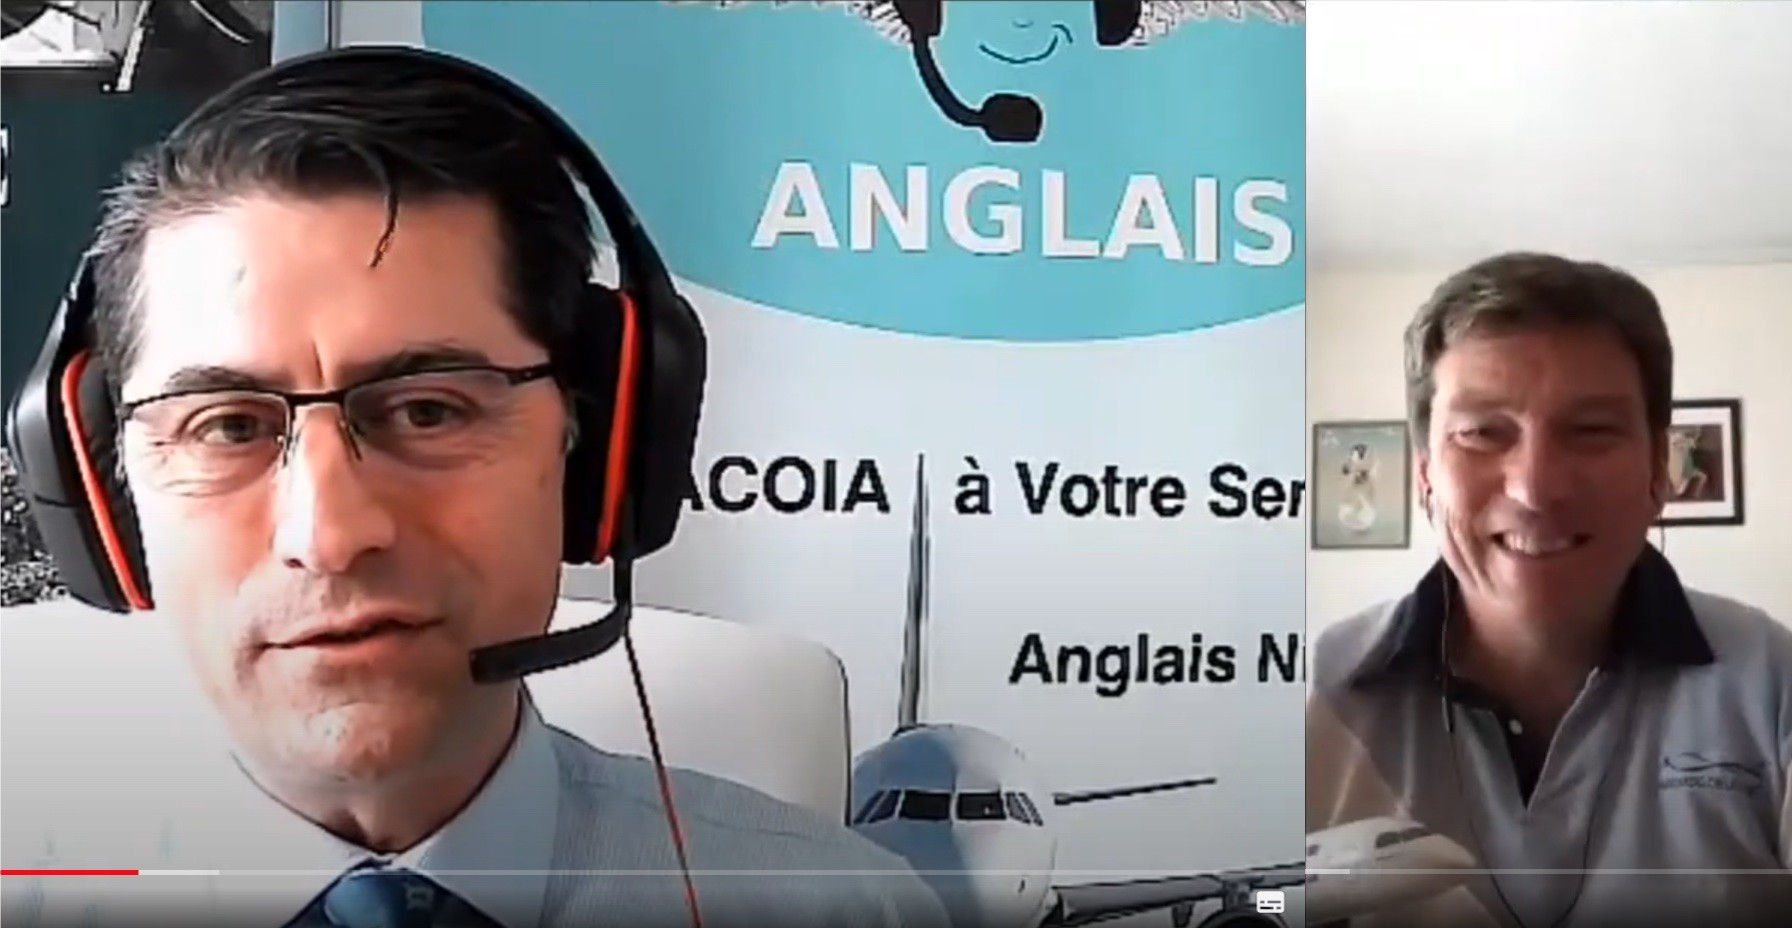 Anglais de l'aviation, Fête de l'aviation, Ivan Hairon interview Toni Giacoia visioconférence video